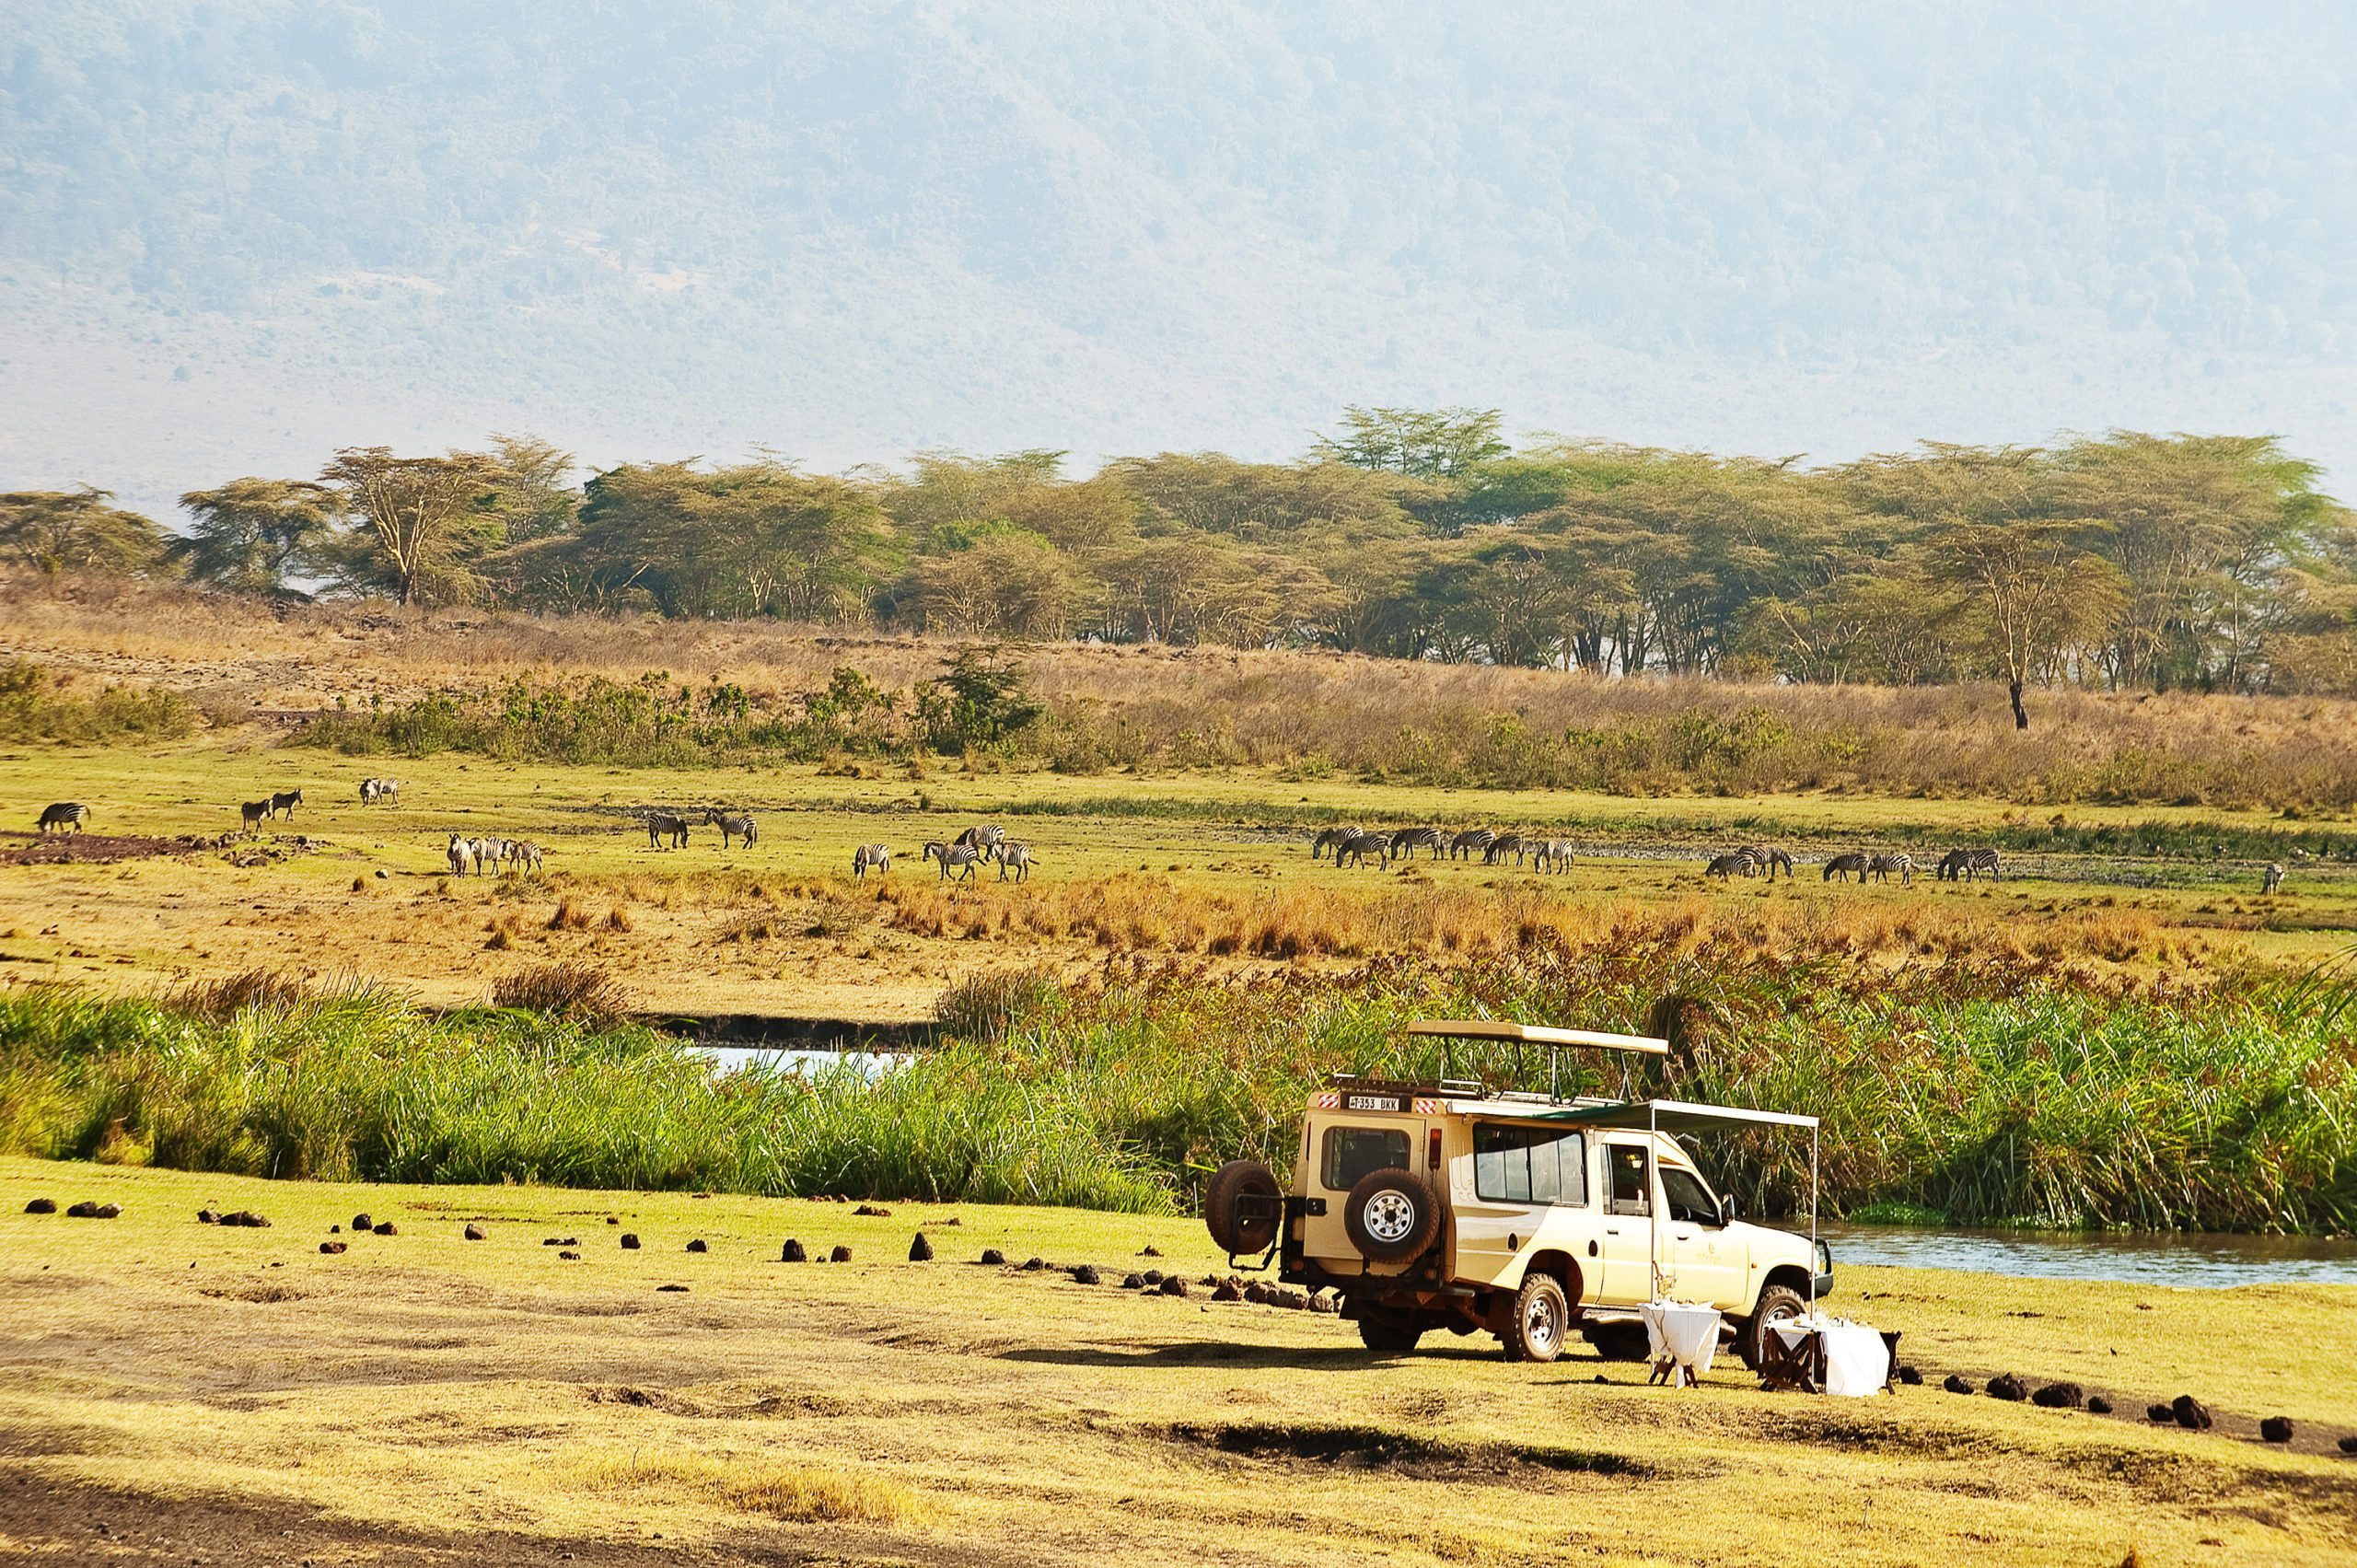 picnic lunch by a safari vehicle on the crater floor near a small lake with wildlife and trees in the background